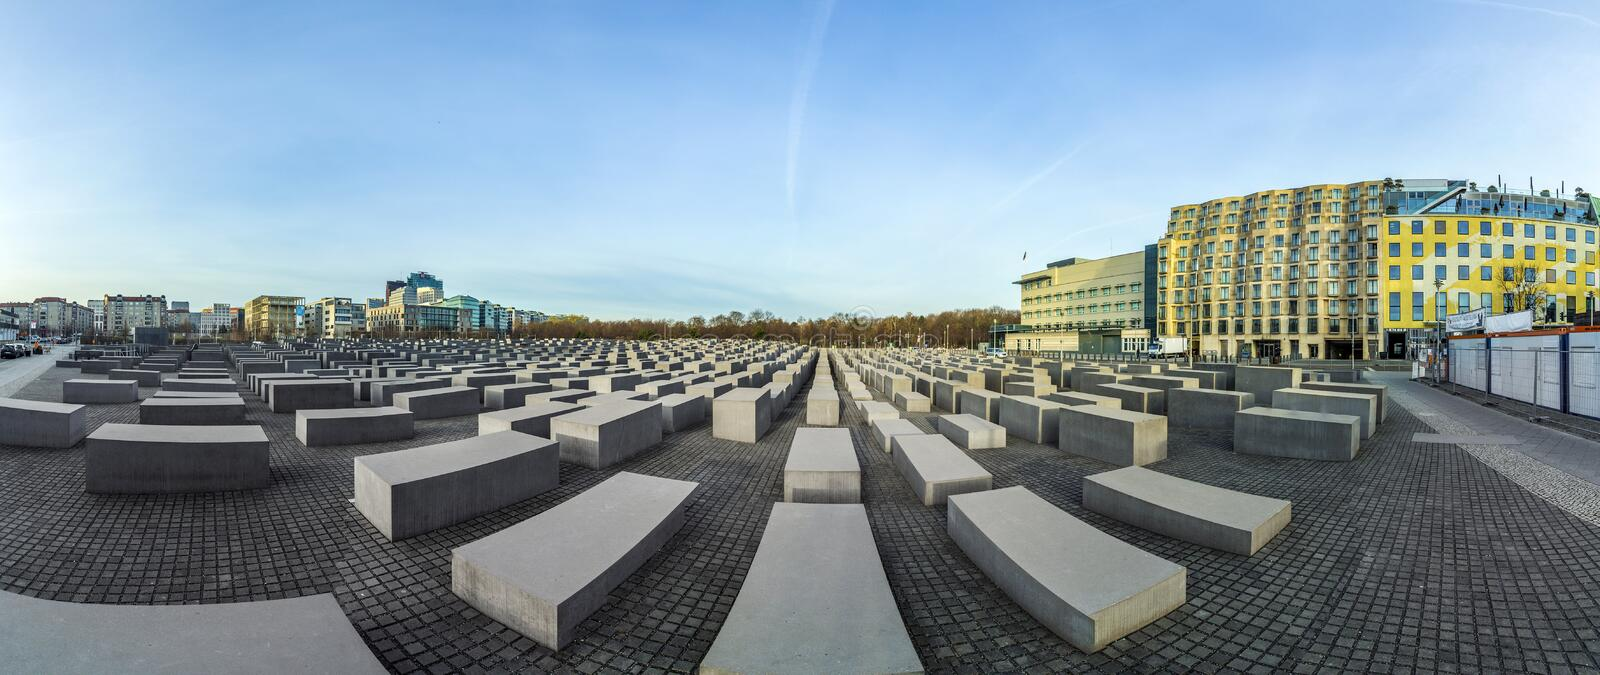 BERLIN, GERMANY - NOV 17, 2014: View of Jewish Holocaust Memorial, Berlin, Germany stock photography